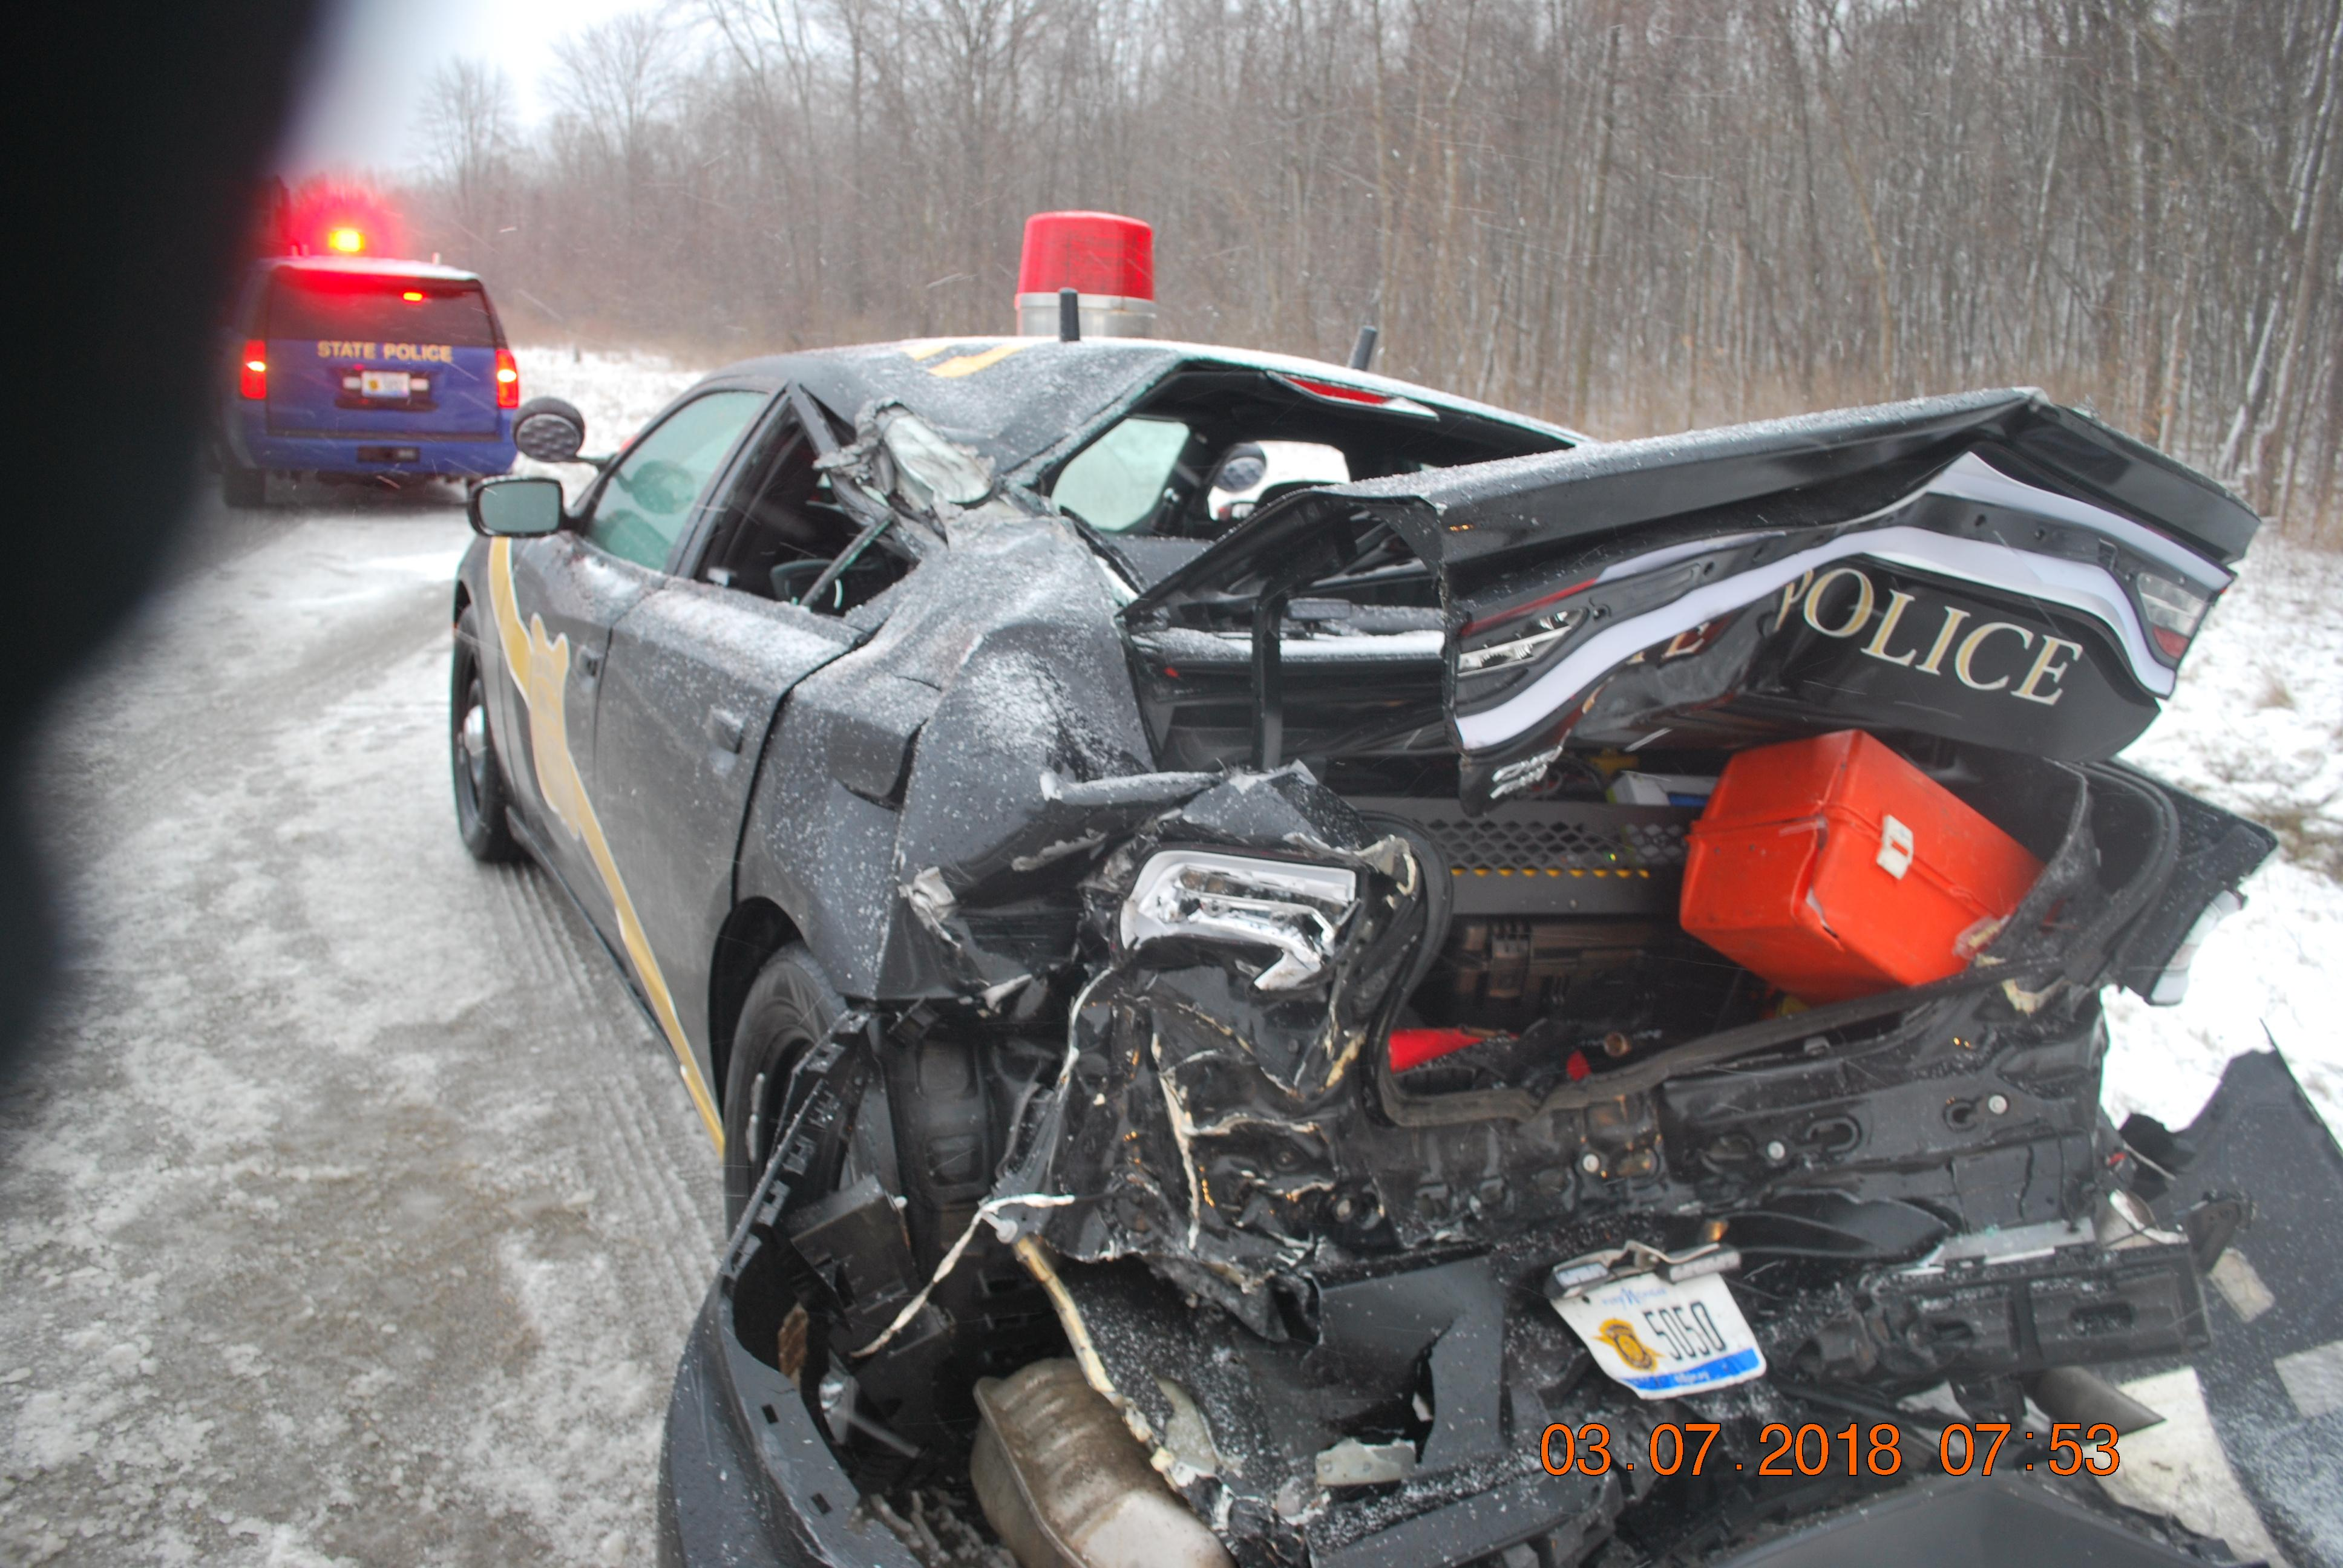 A Michigan State Police trooper was injured in a crash involving a semi Wednesday morning in Berrien County. (Courtesy: Michigan State Police)